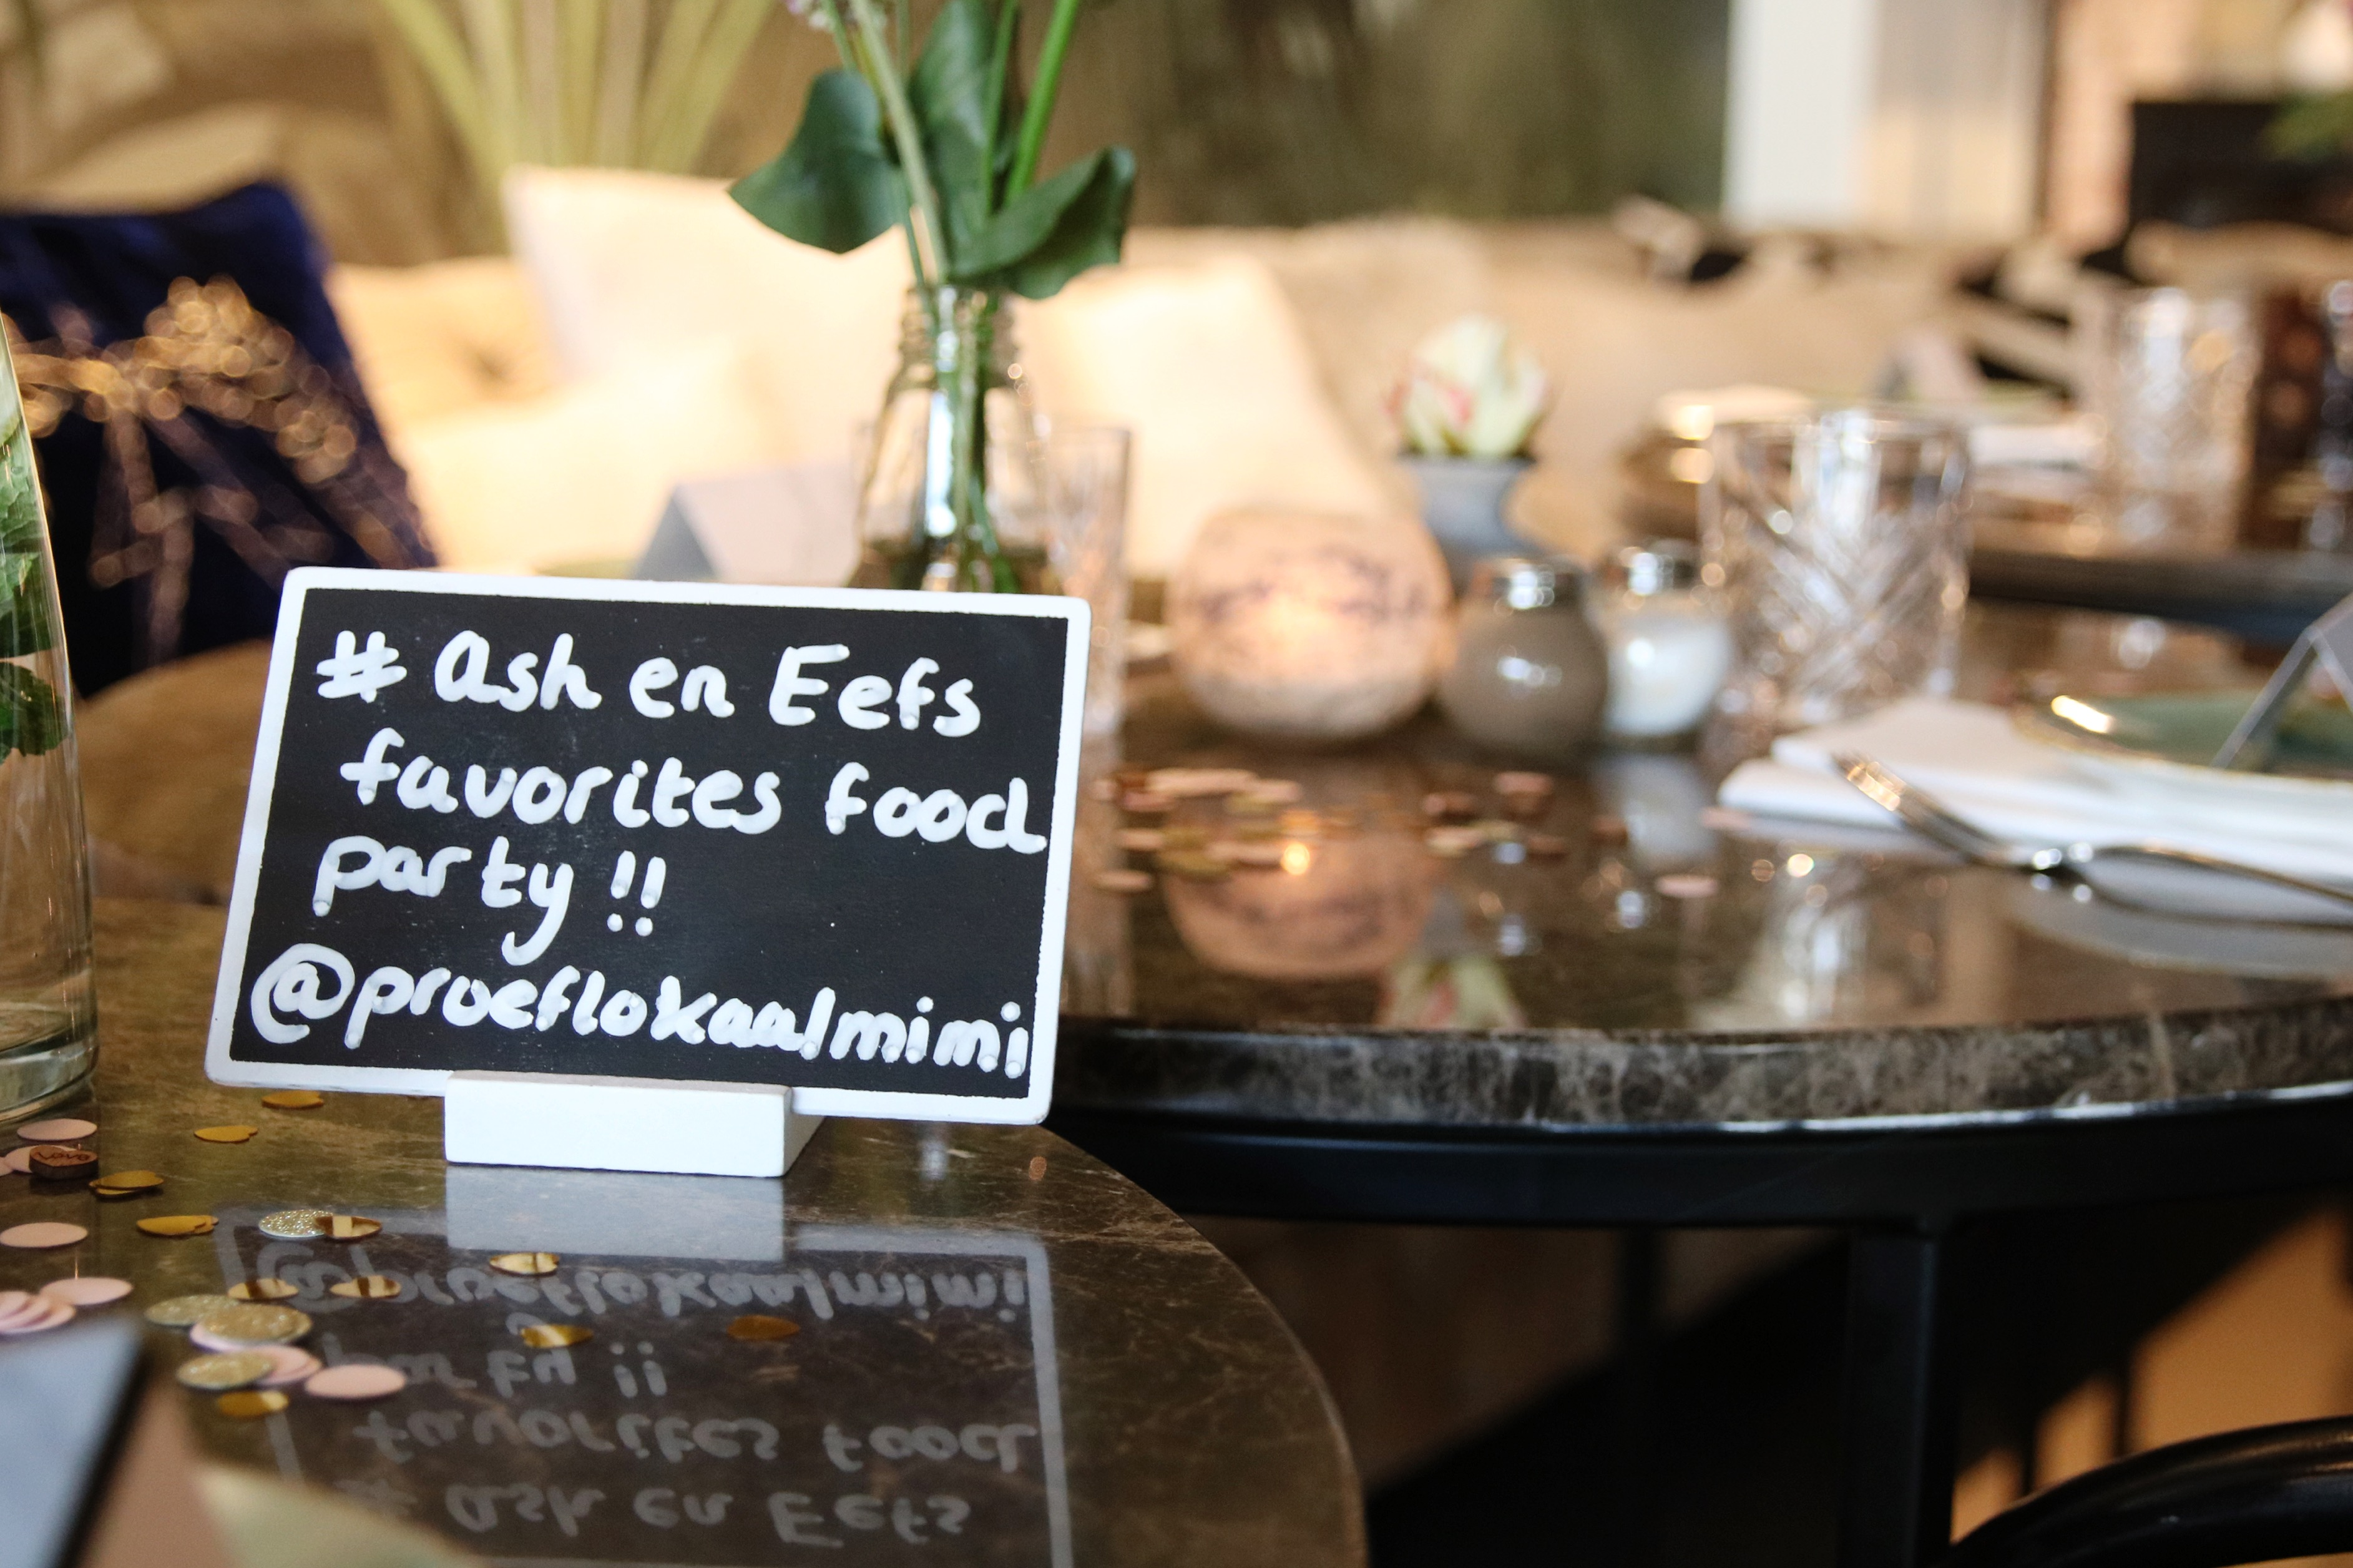 Zo kwam onze 'favorites food party' tot stand!